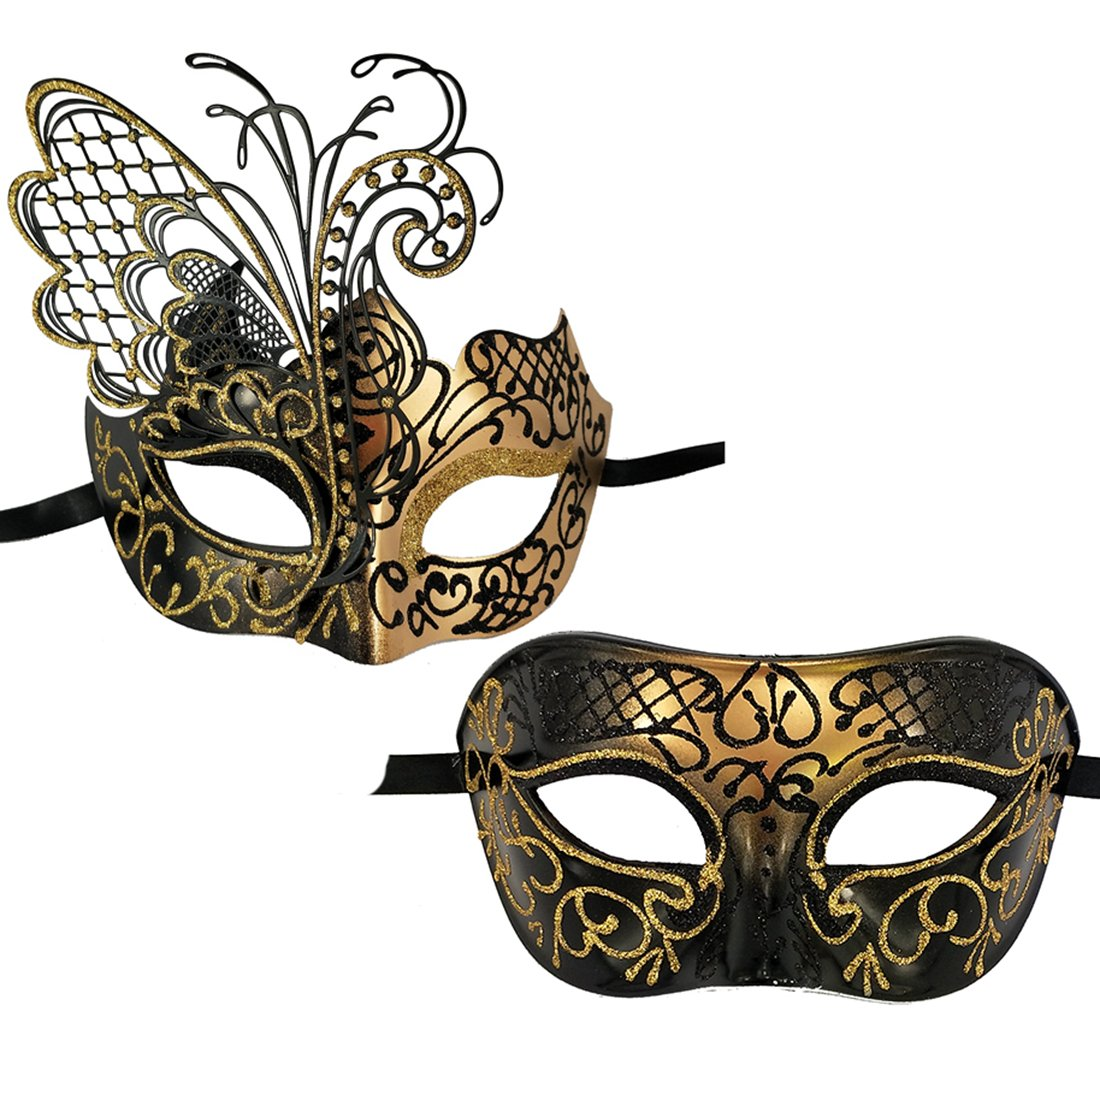 Xvevina Couples Pair Mardi Gras Venetian Masquerade Masks Set Party Costume Accessory (Black Gold Couples), Large